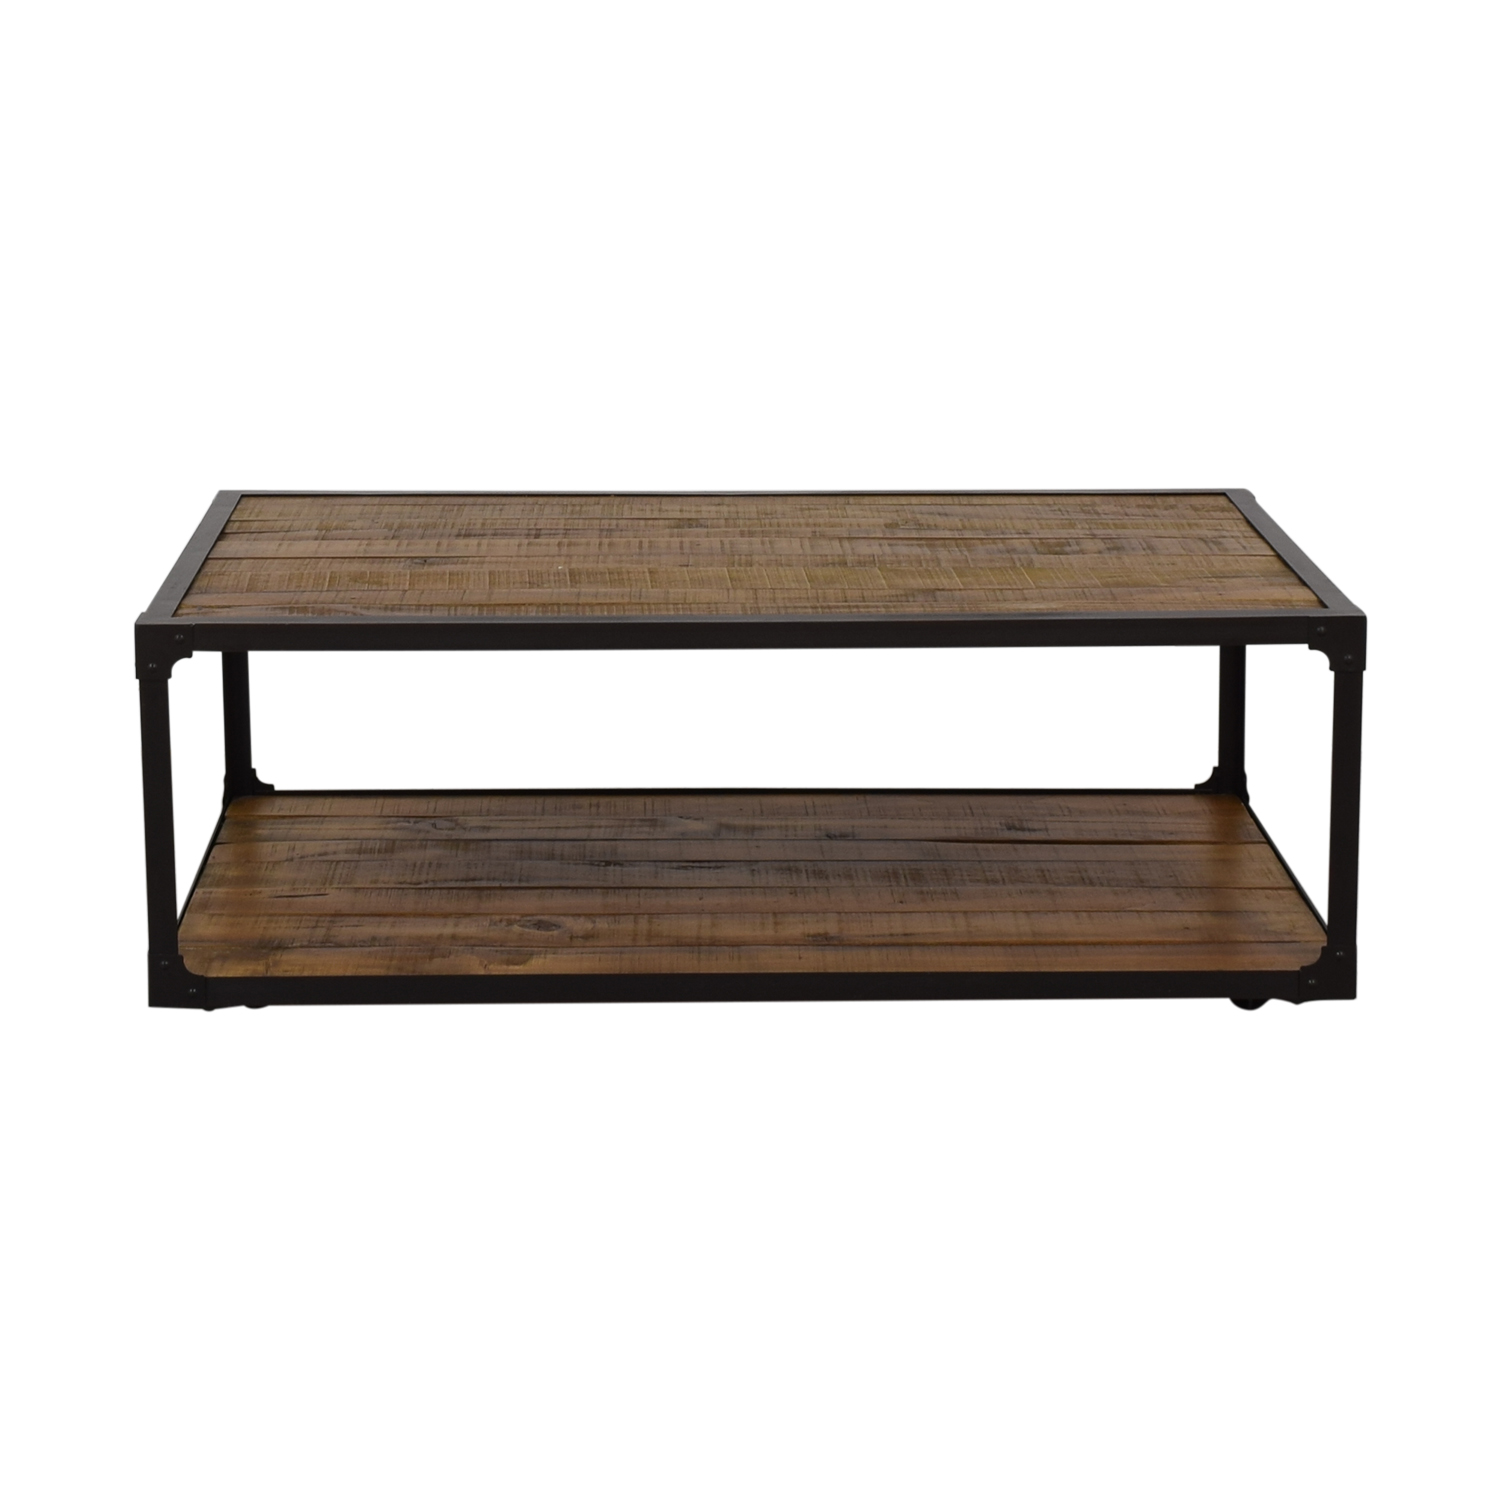 Rustic Wood Coffee Table sale